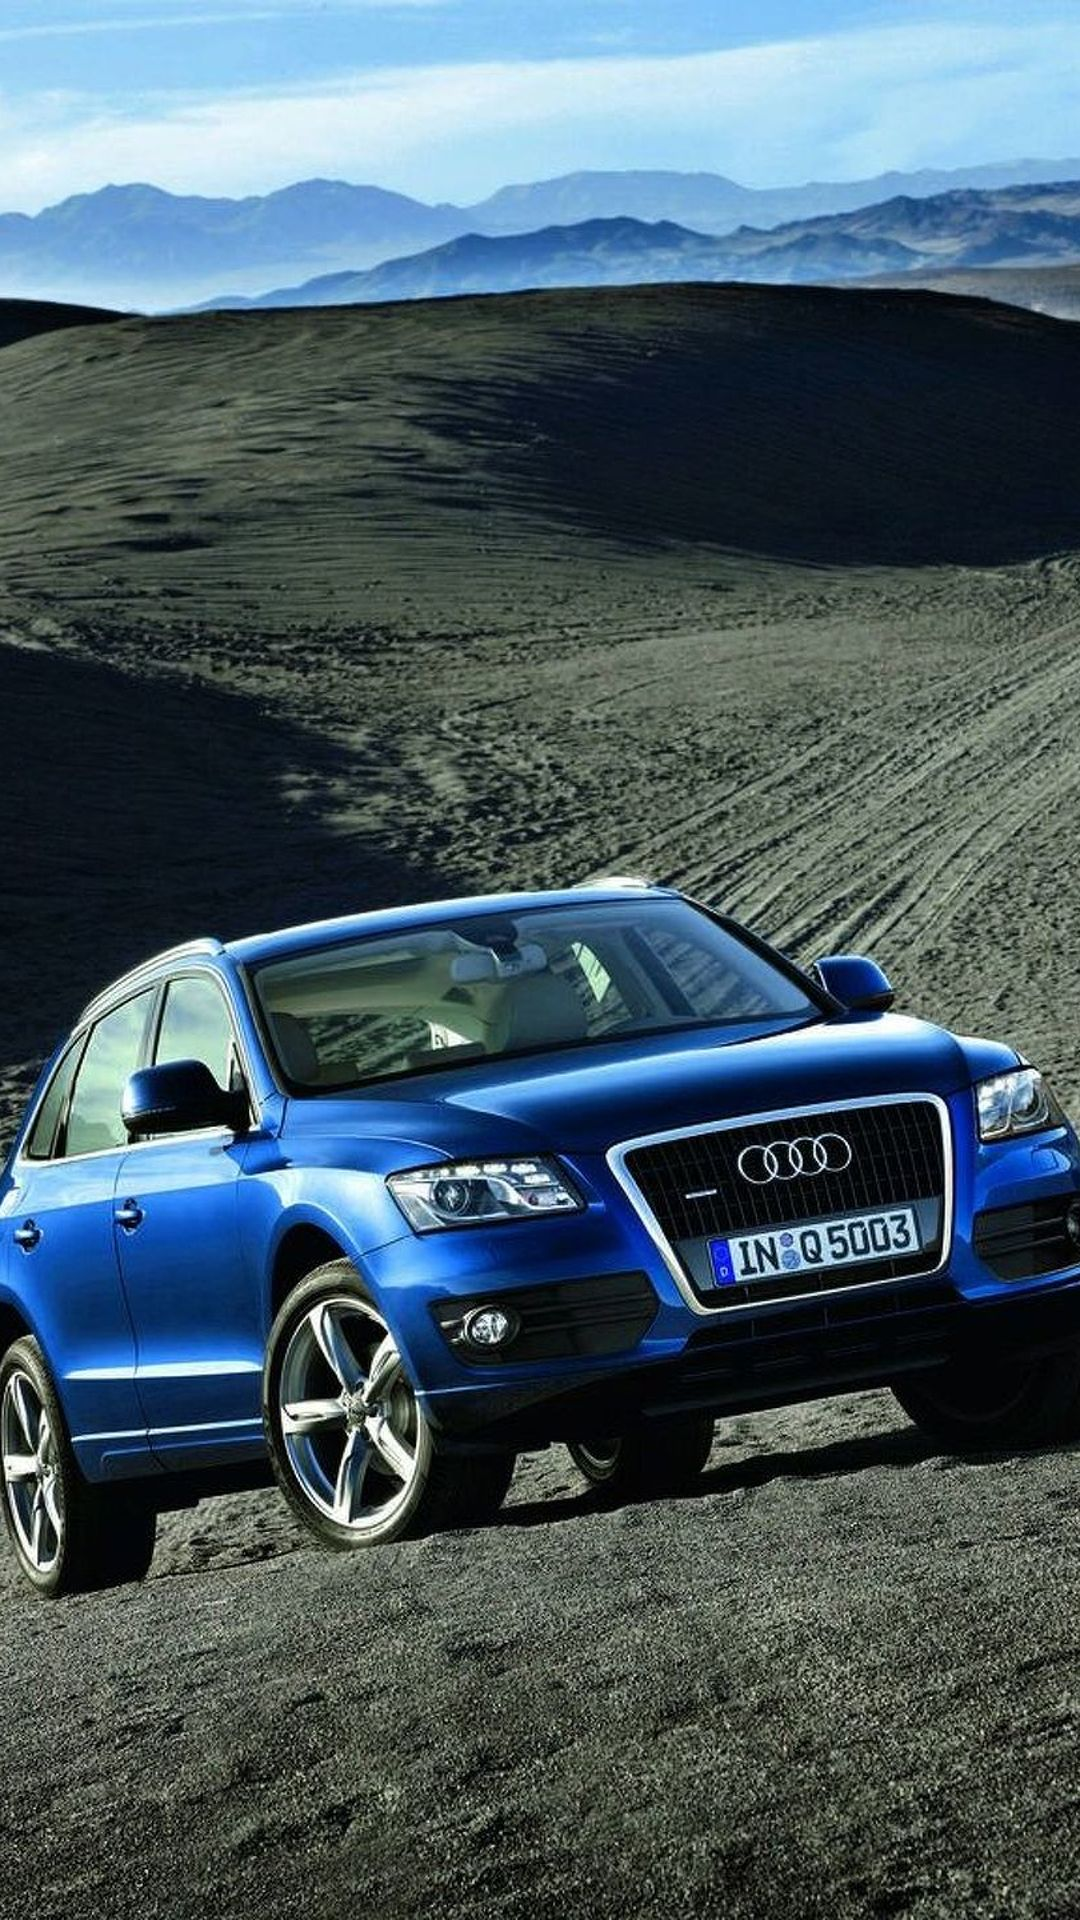 Audi Q5 Official Details & Video Revealed